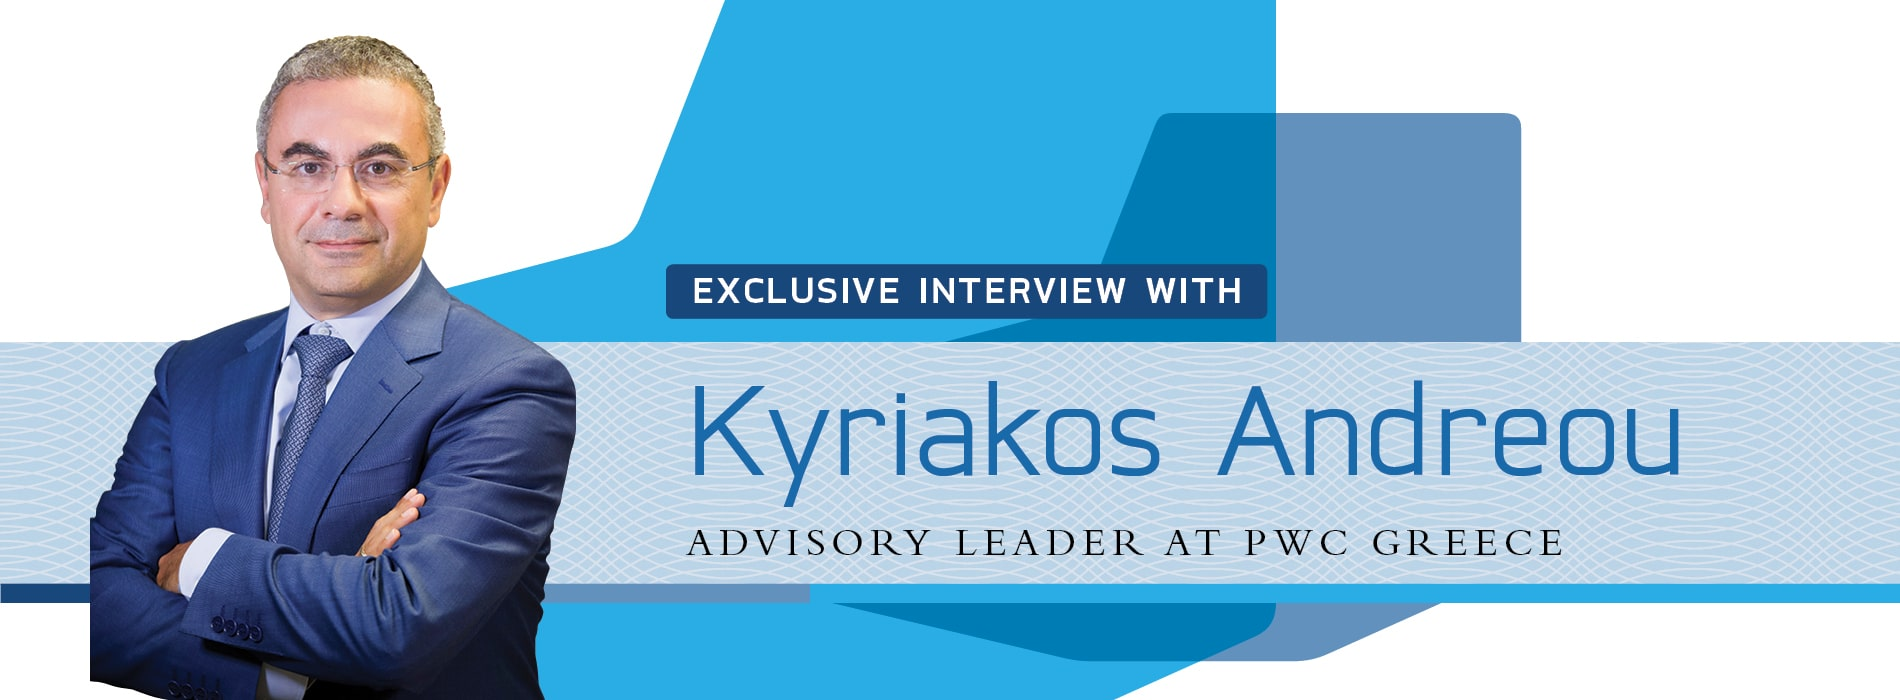 Interview with Kyriakos Andreou,Advisory Leader at PwC Greece